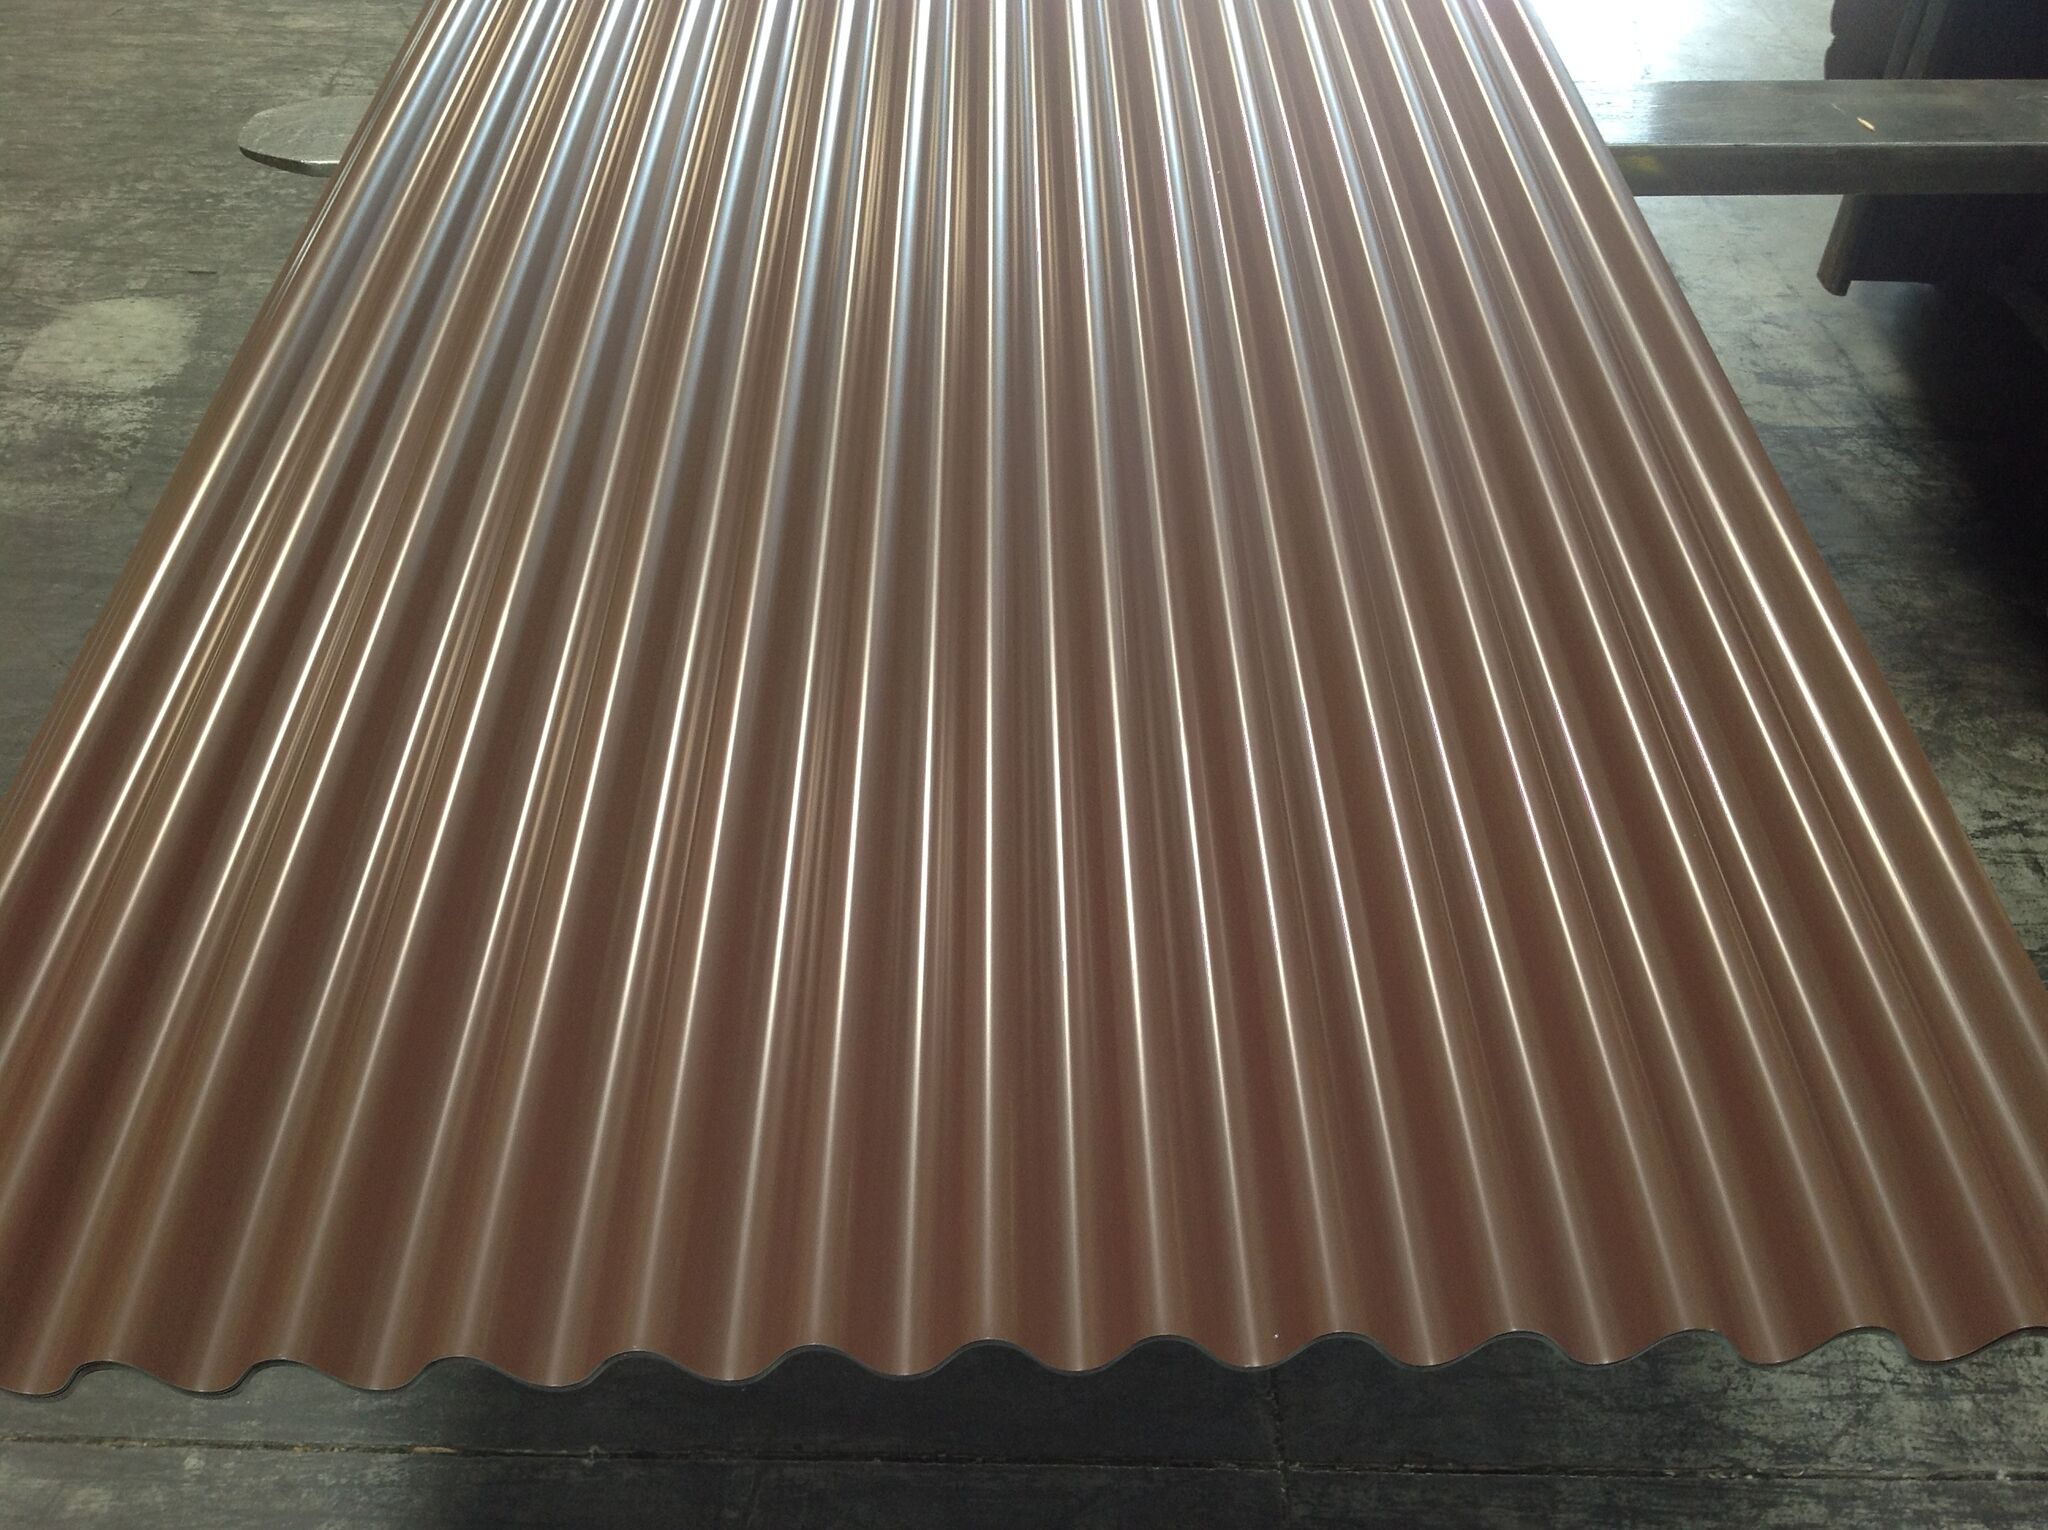 7-8 corrugated brown